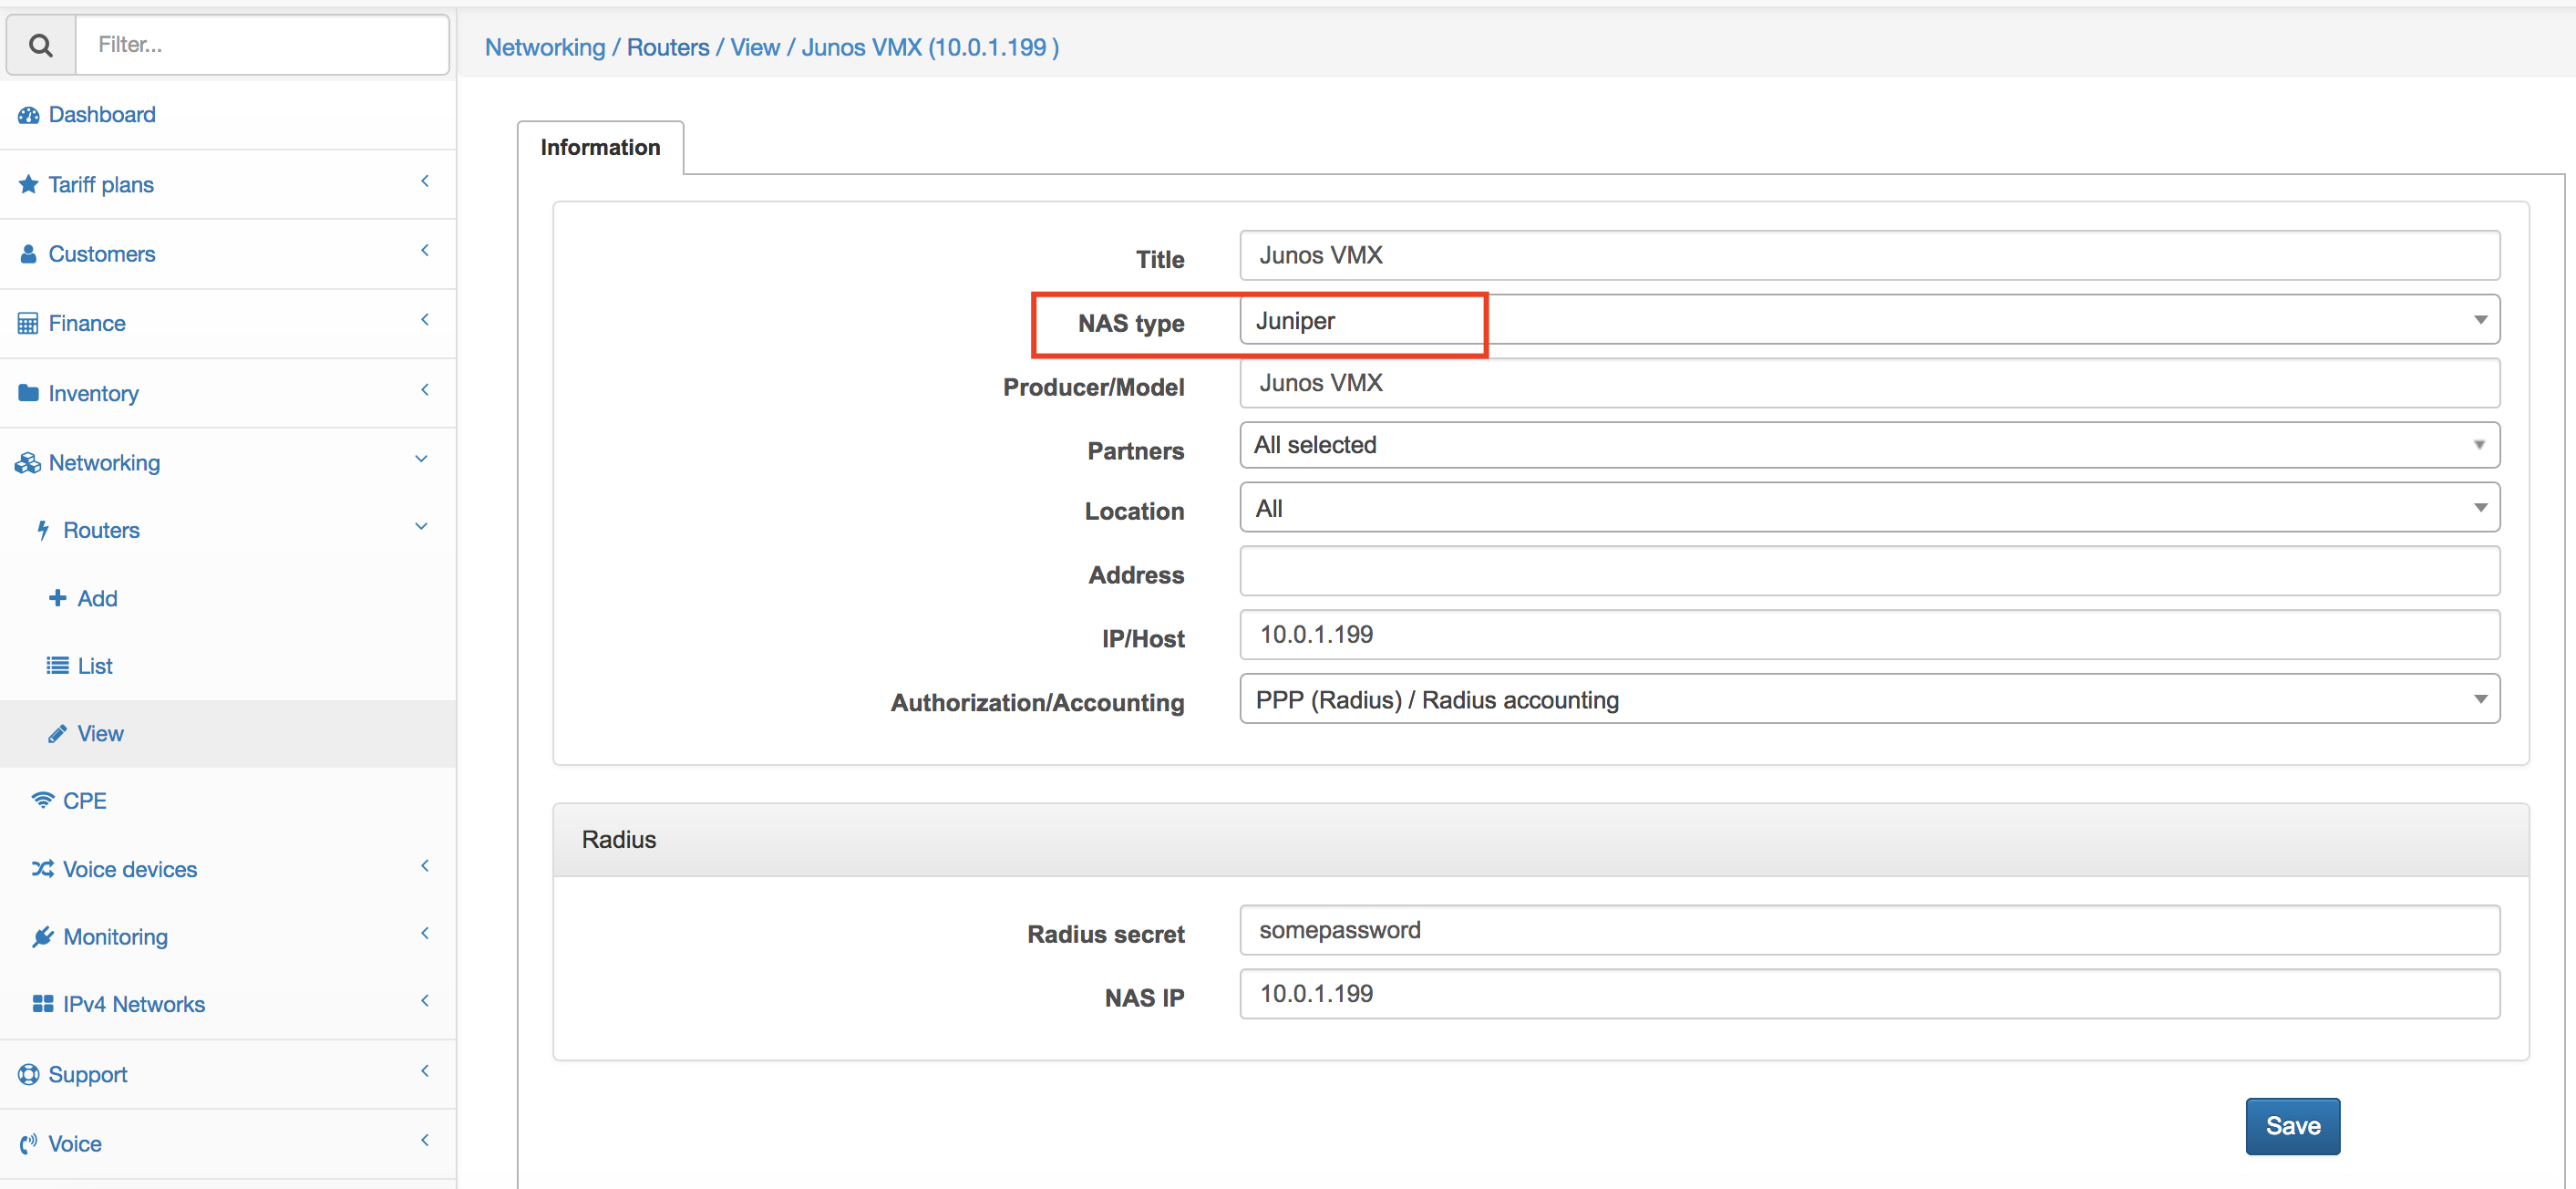 Admin login to Juniper (JUNOS)